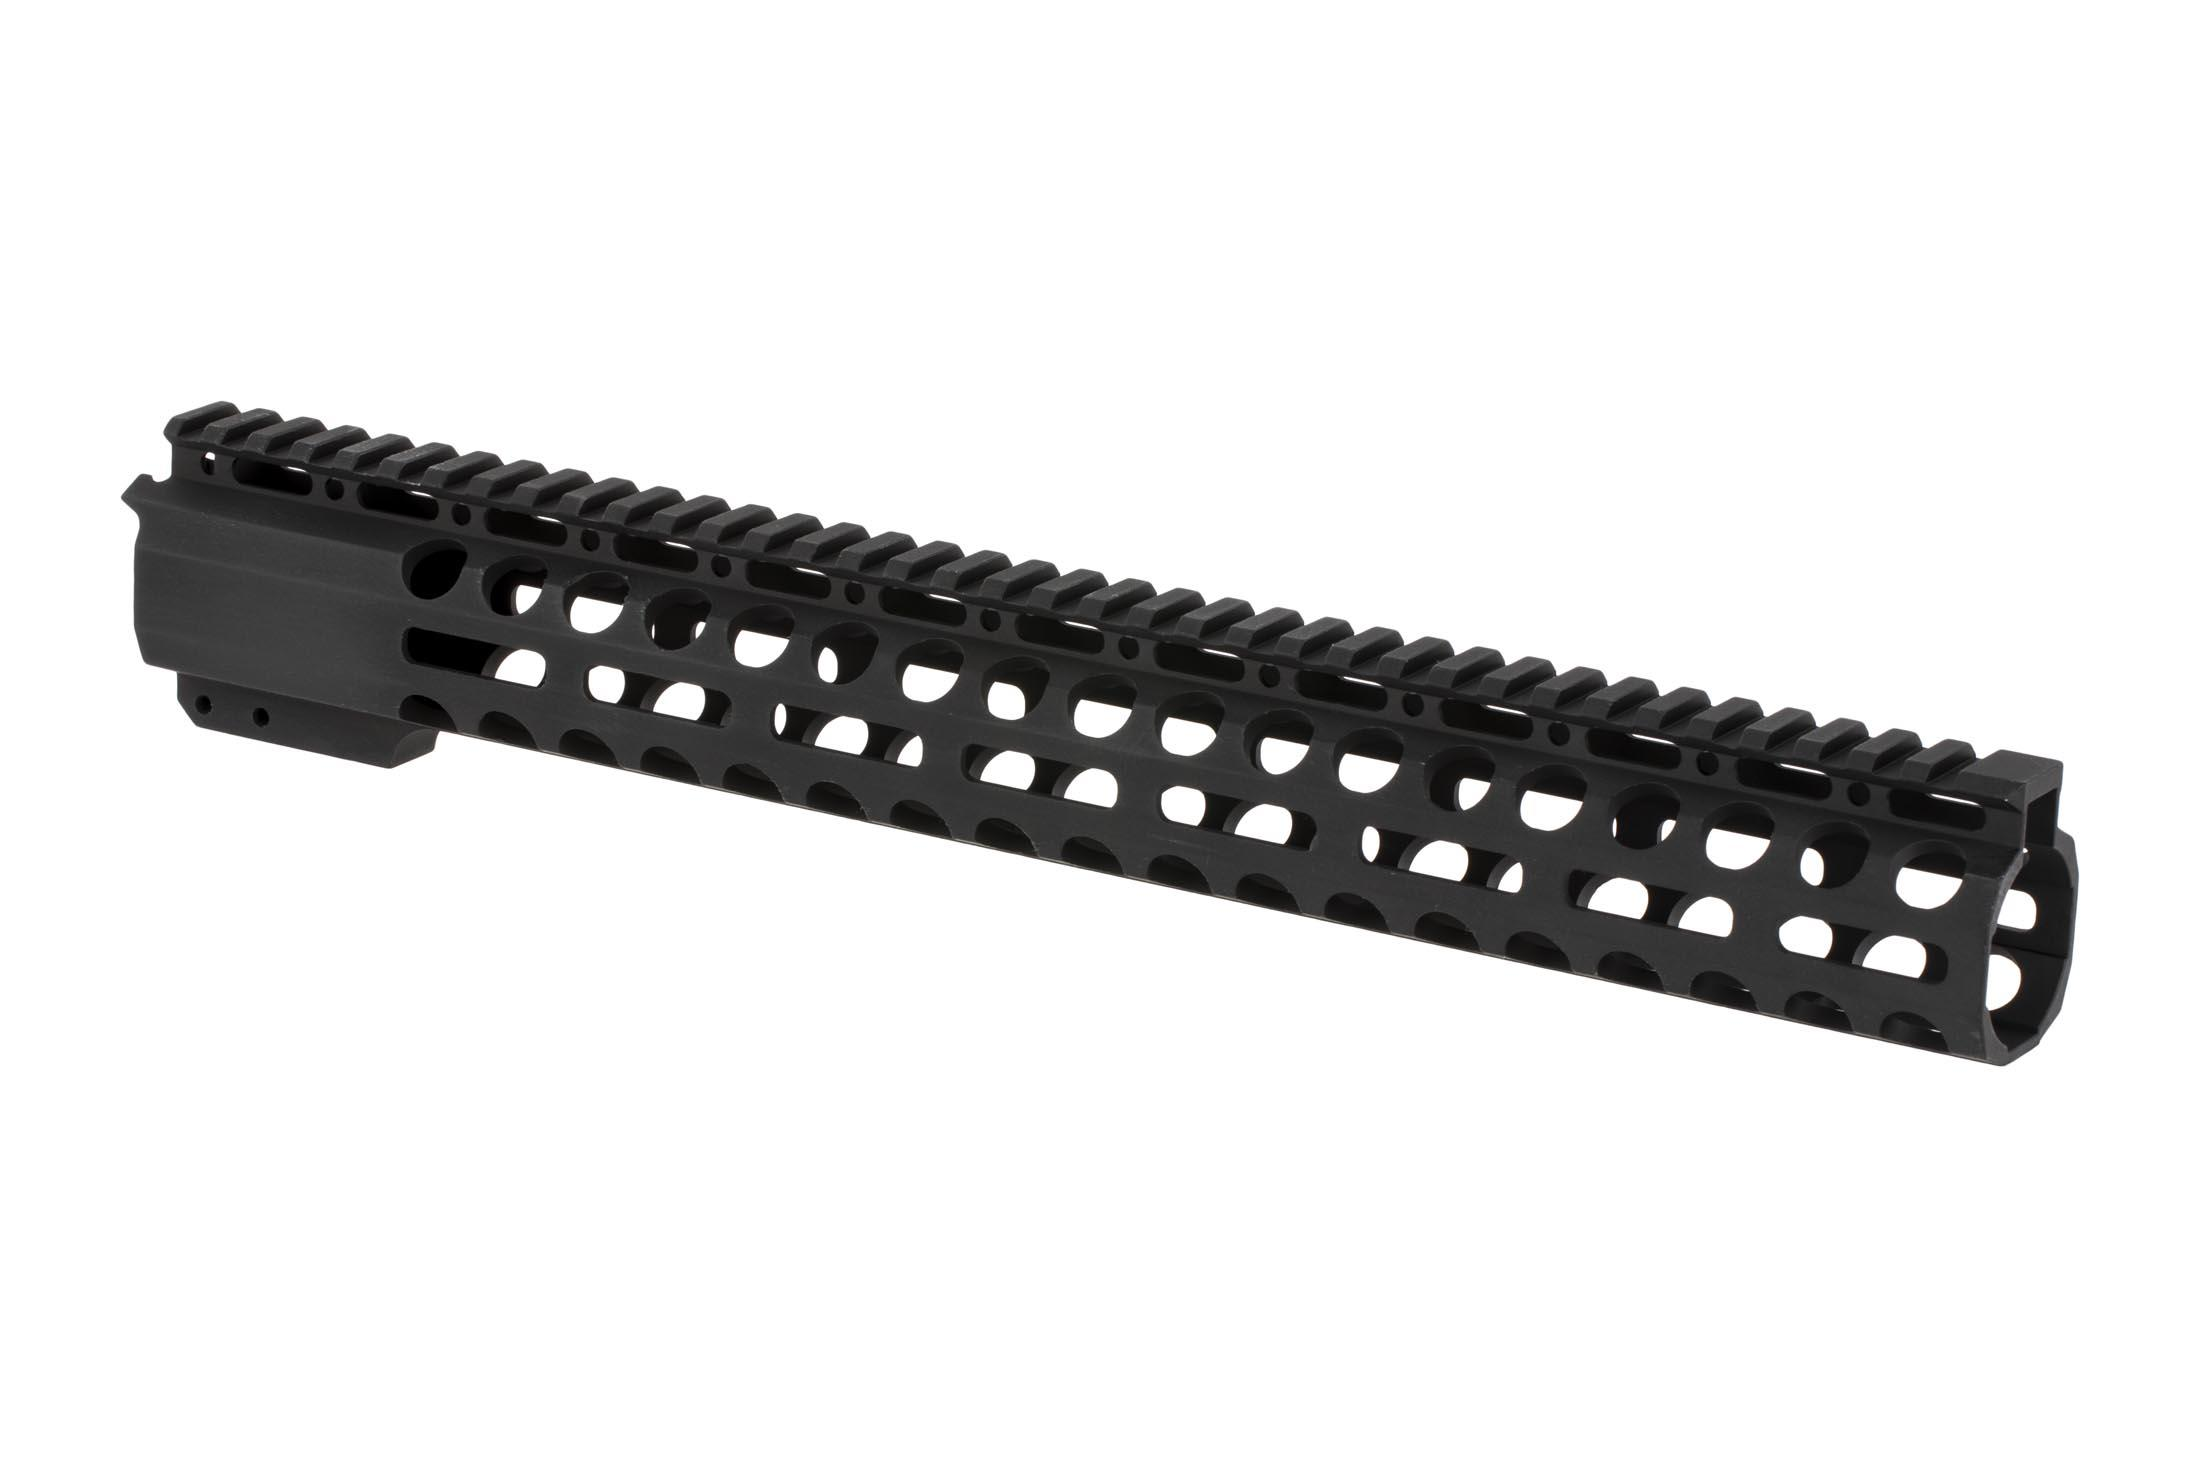 Radical Firearms 3rd generation free float Primary Arms Exclusive M-LOK handguard for the AR-15 is 15 long to cover mid-length gas systems